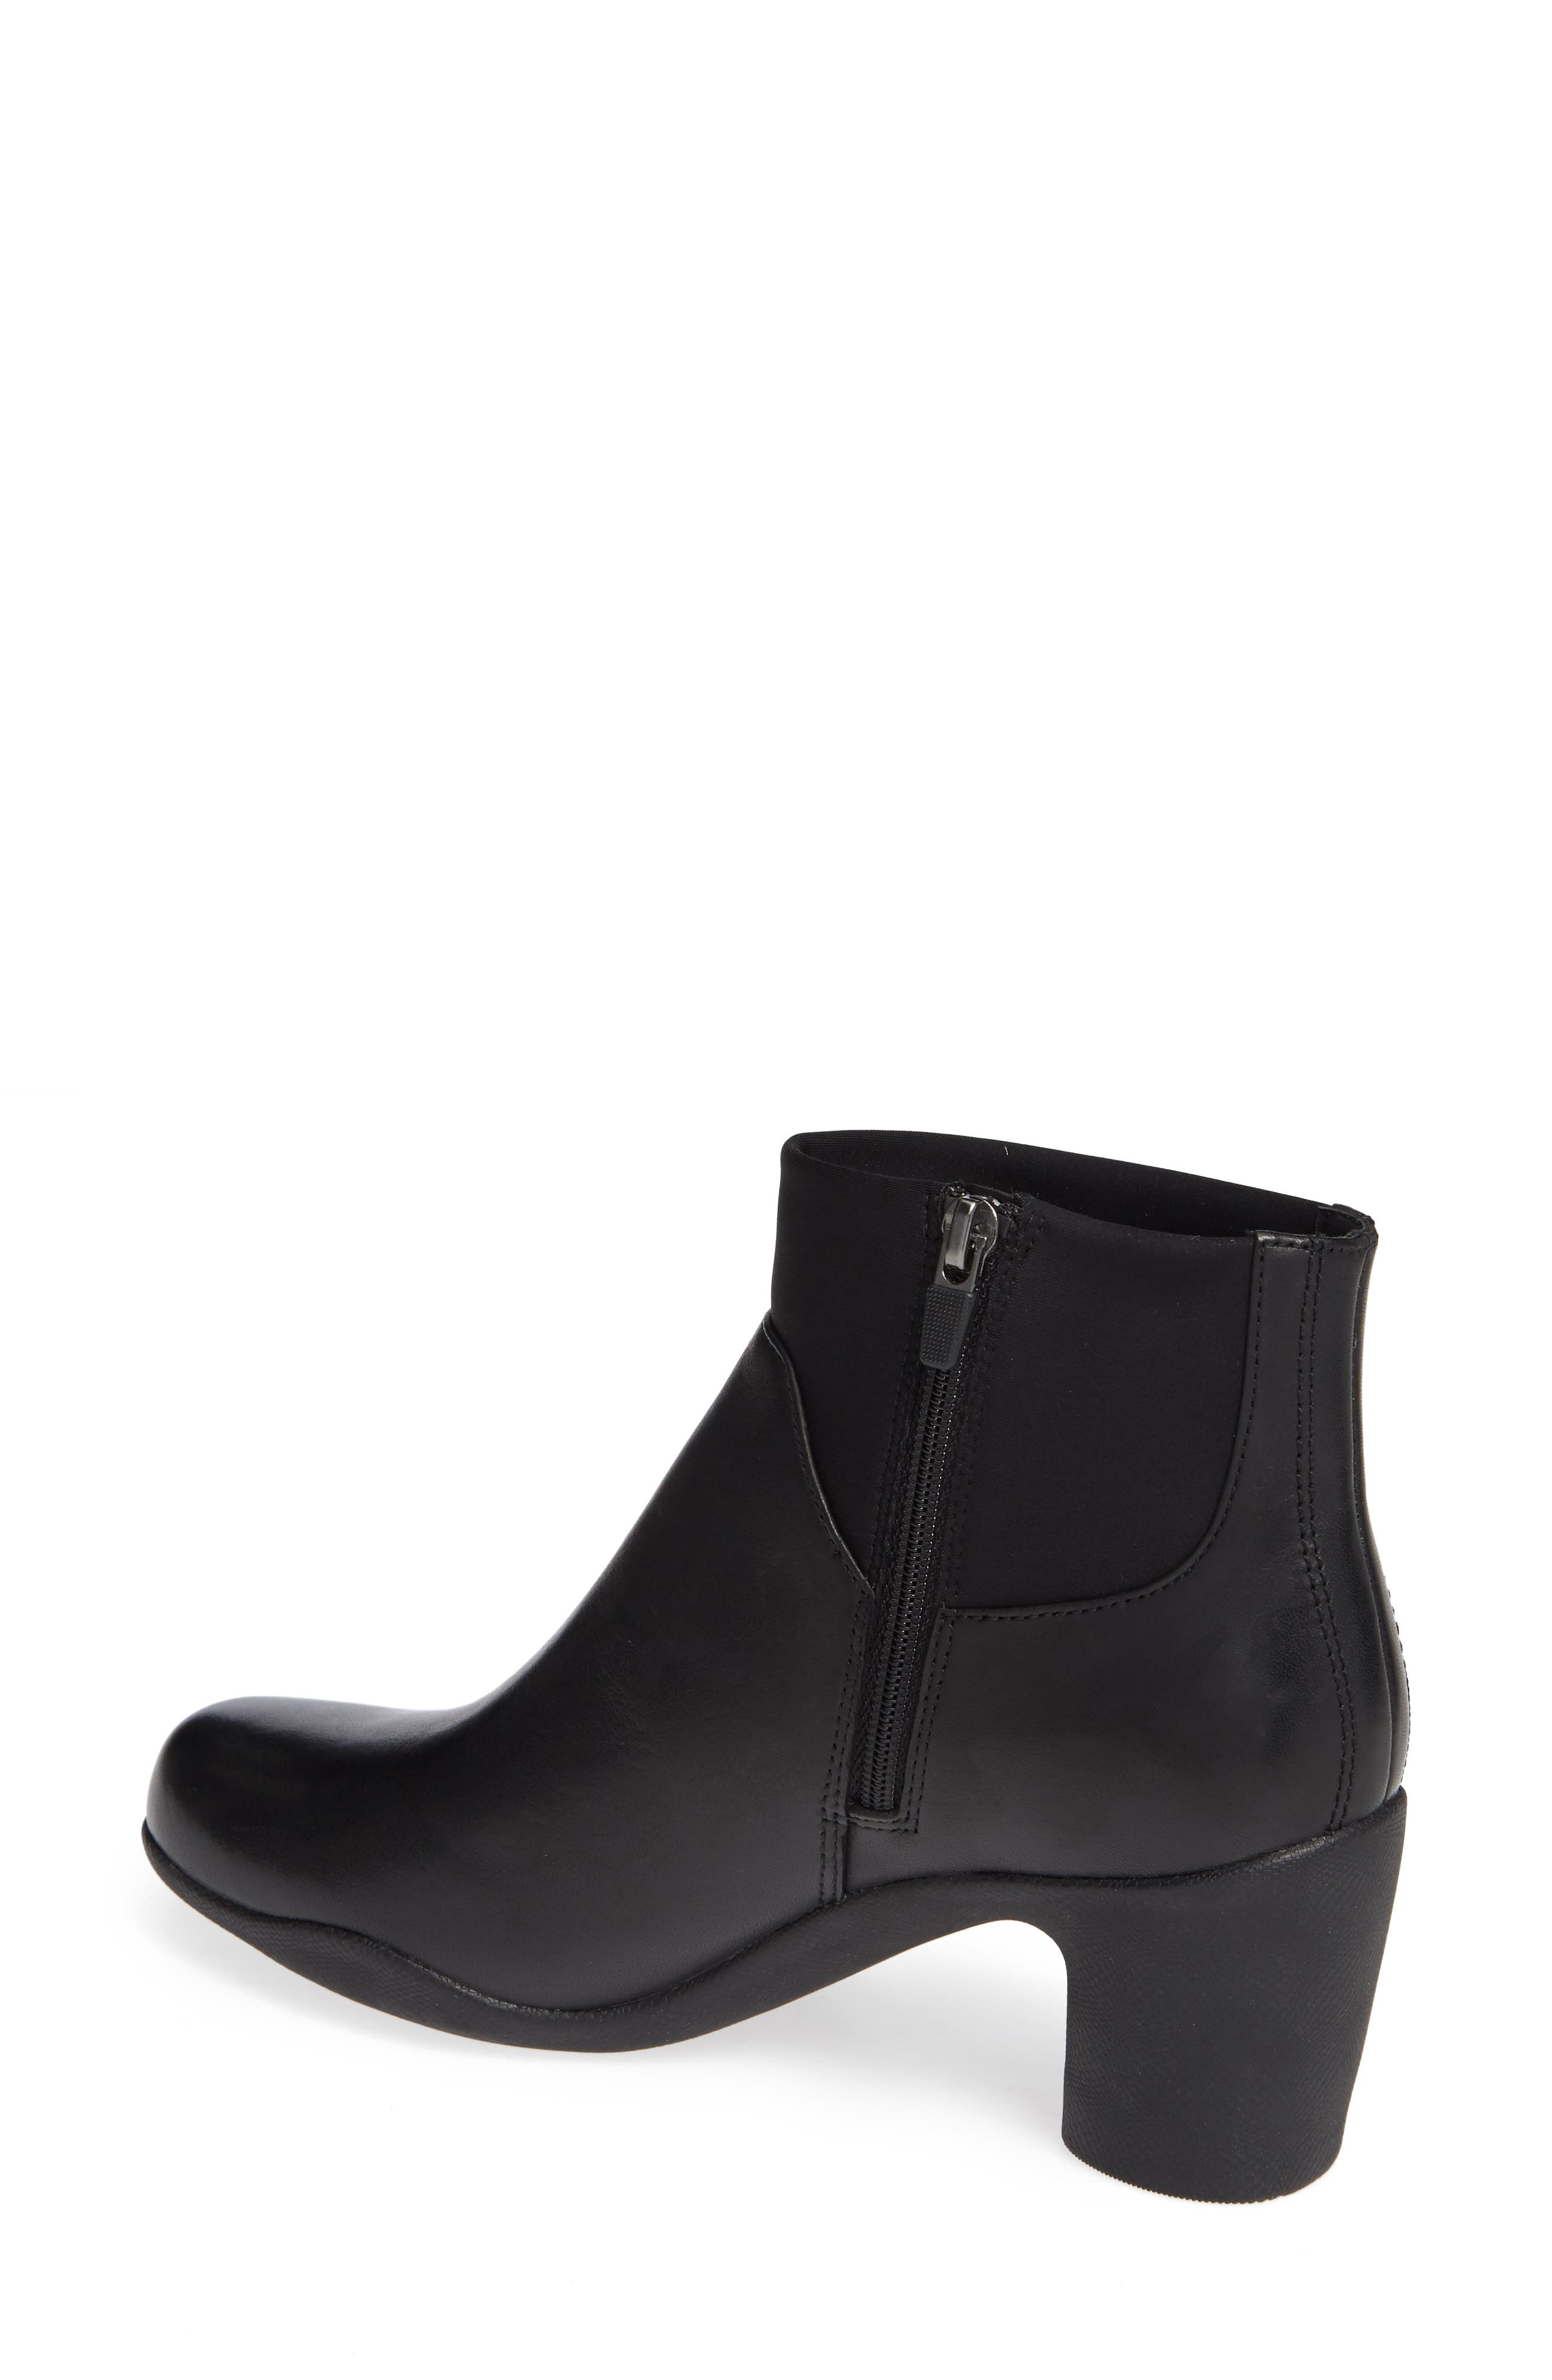 Clarks Un Rose Mid Ankle Boot,                             Alternate thumbnail 2, color,                             BLACK LEATHER